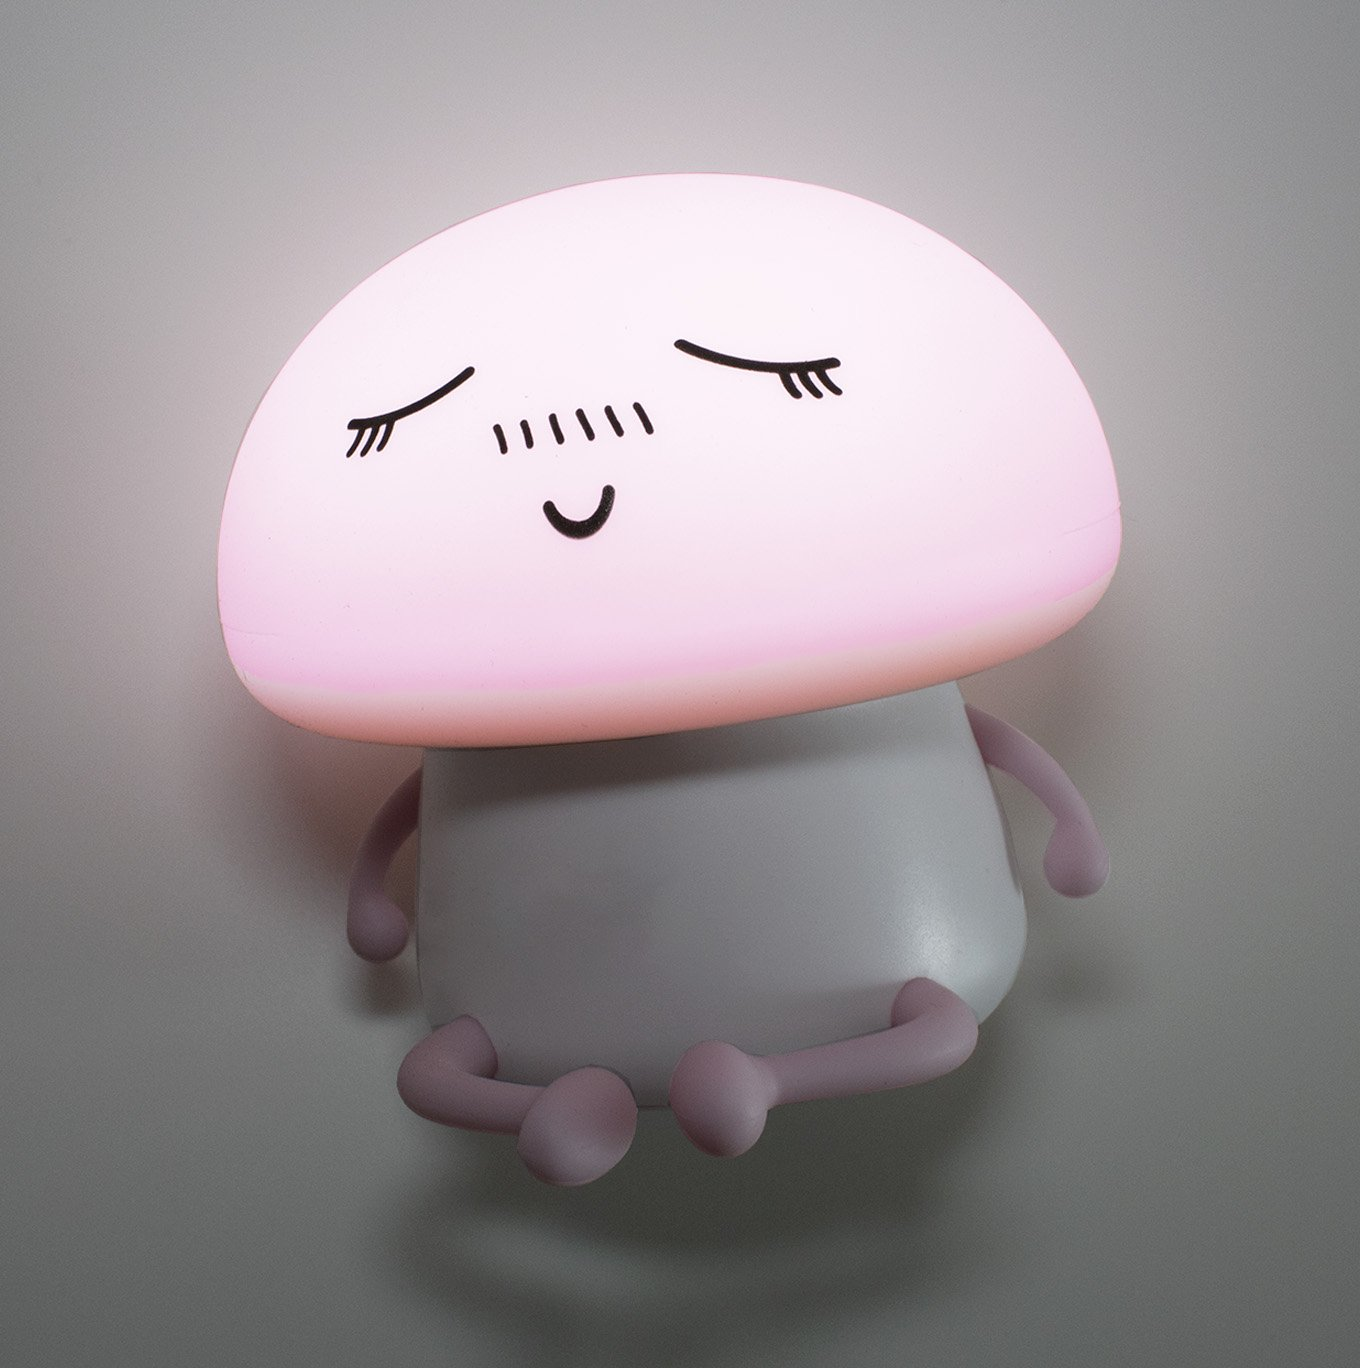 LuxLumi Silicone Emoji Mushroom Buddy LED Touch Nightlight is Dimmable, Portable, Rechargeable or Battery Powered for Toddlers, Children, Kids, Teens, or Nursery (Meditating Pink (Rechargeable))